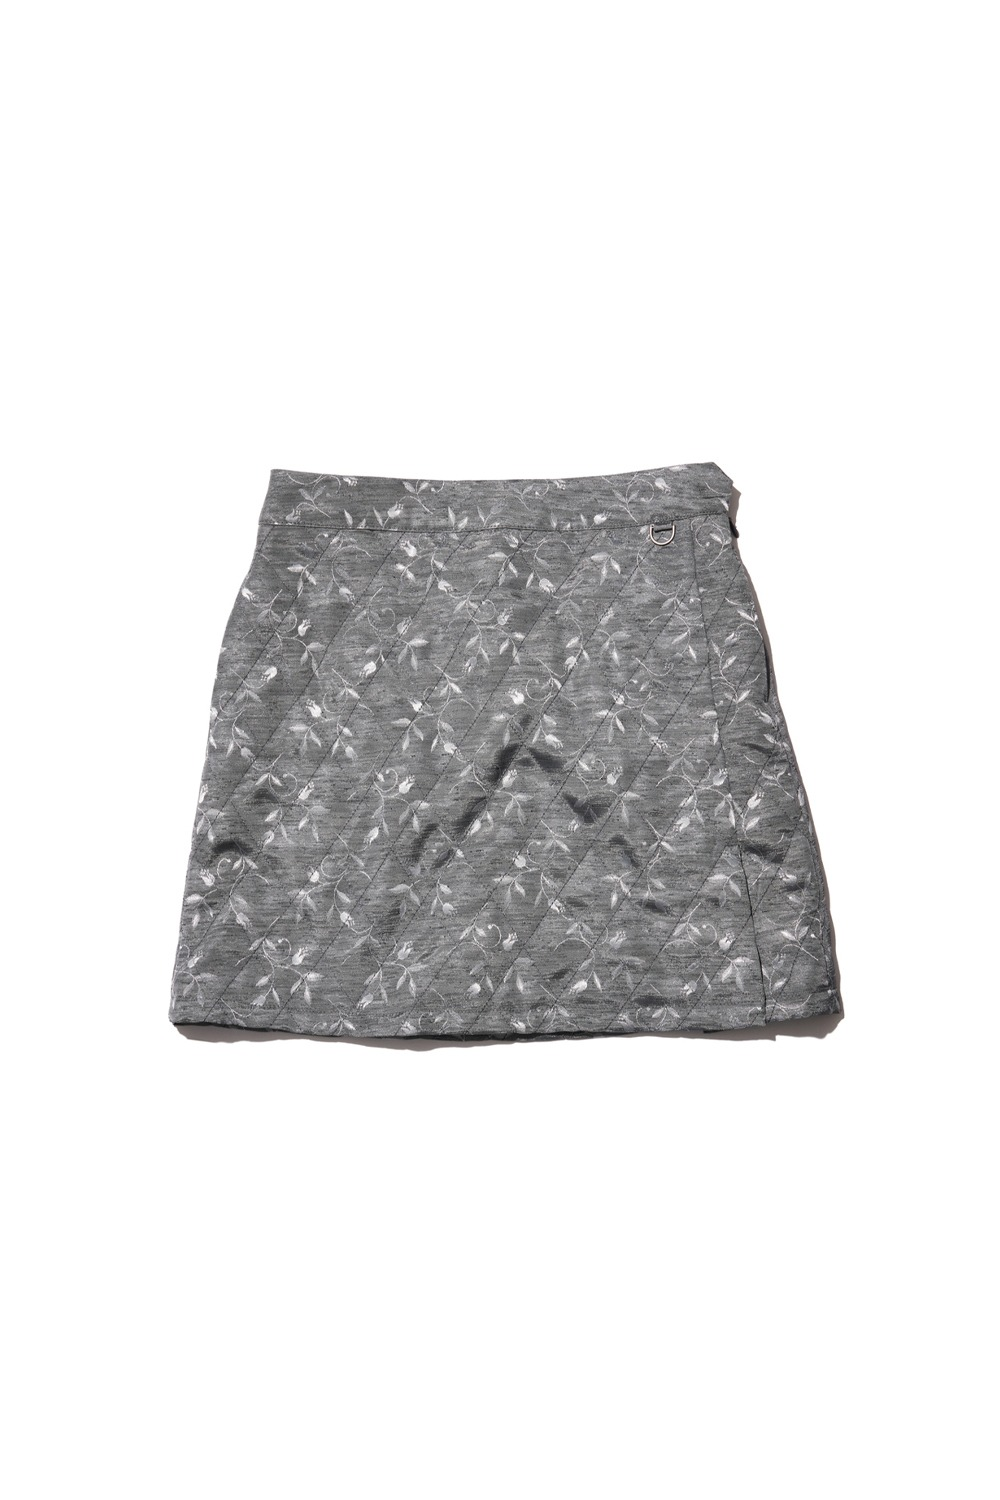 PROJECT MAGO_QUILTED SKIRT_GREY